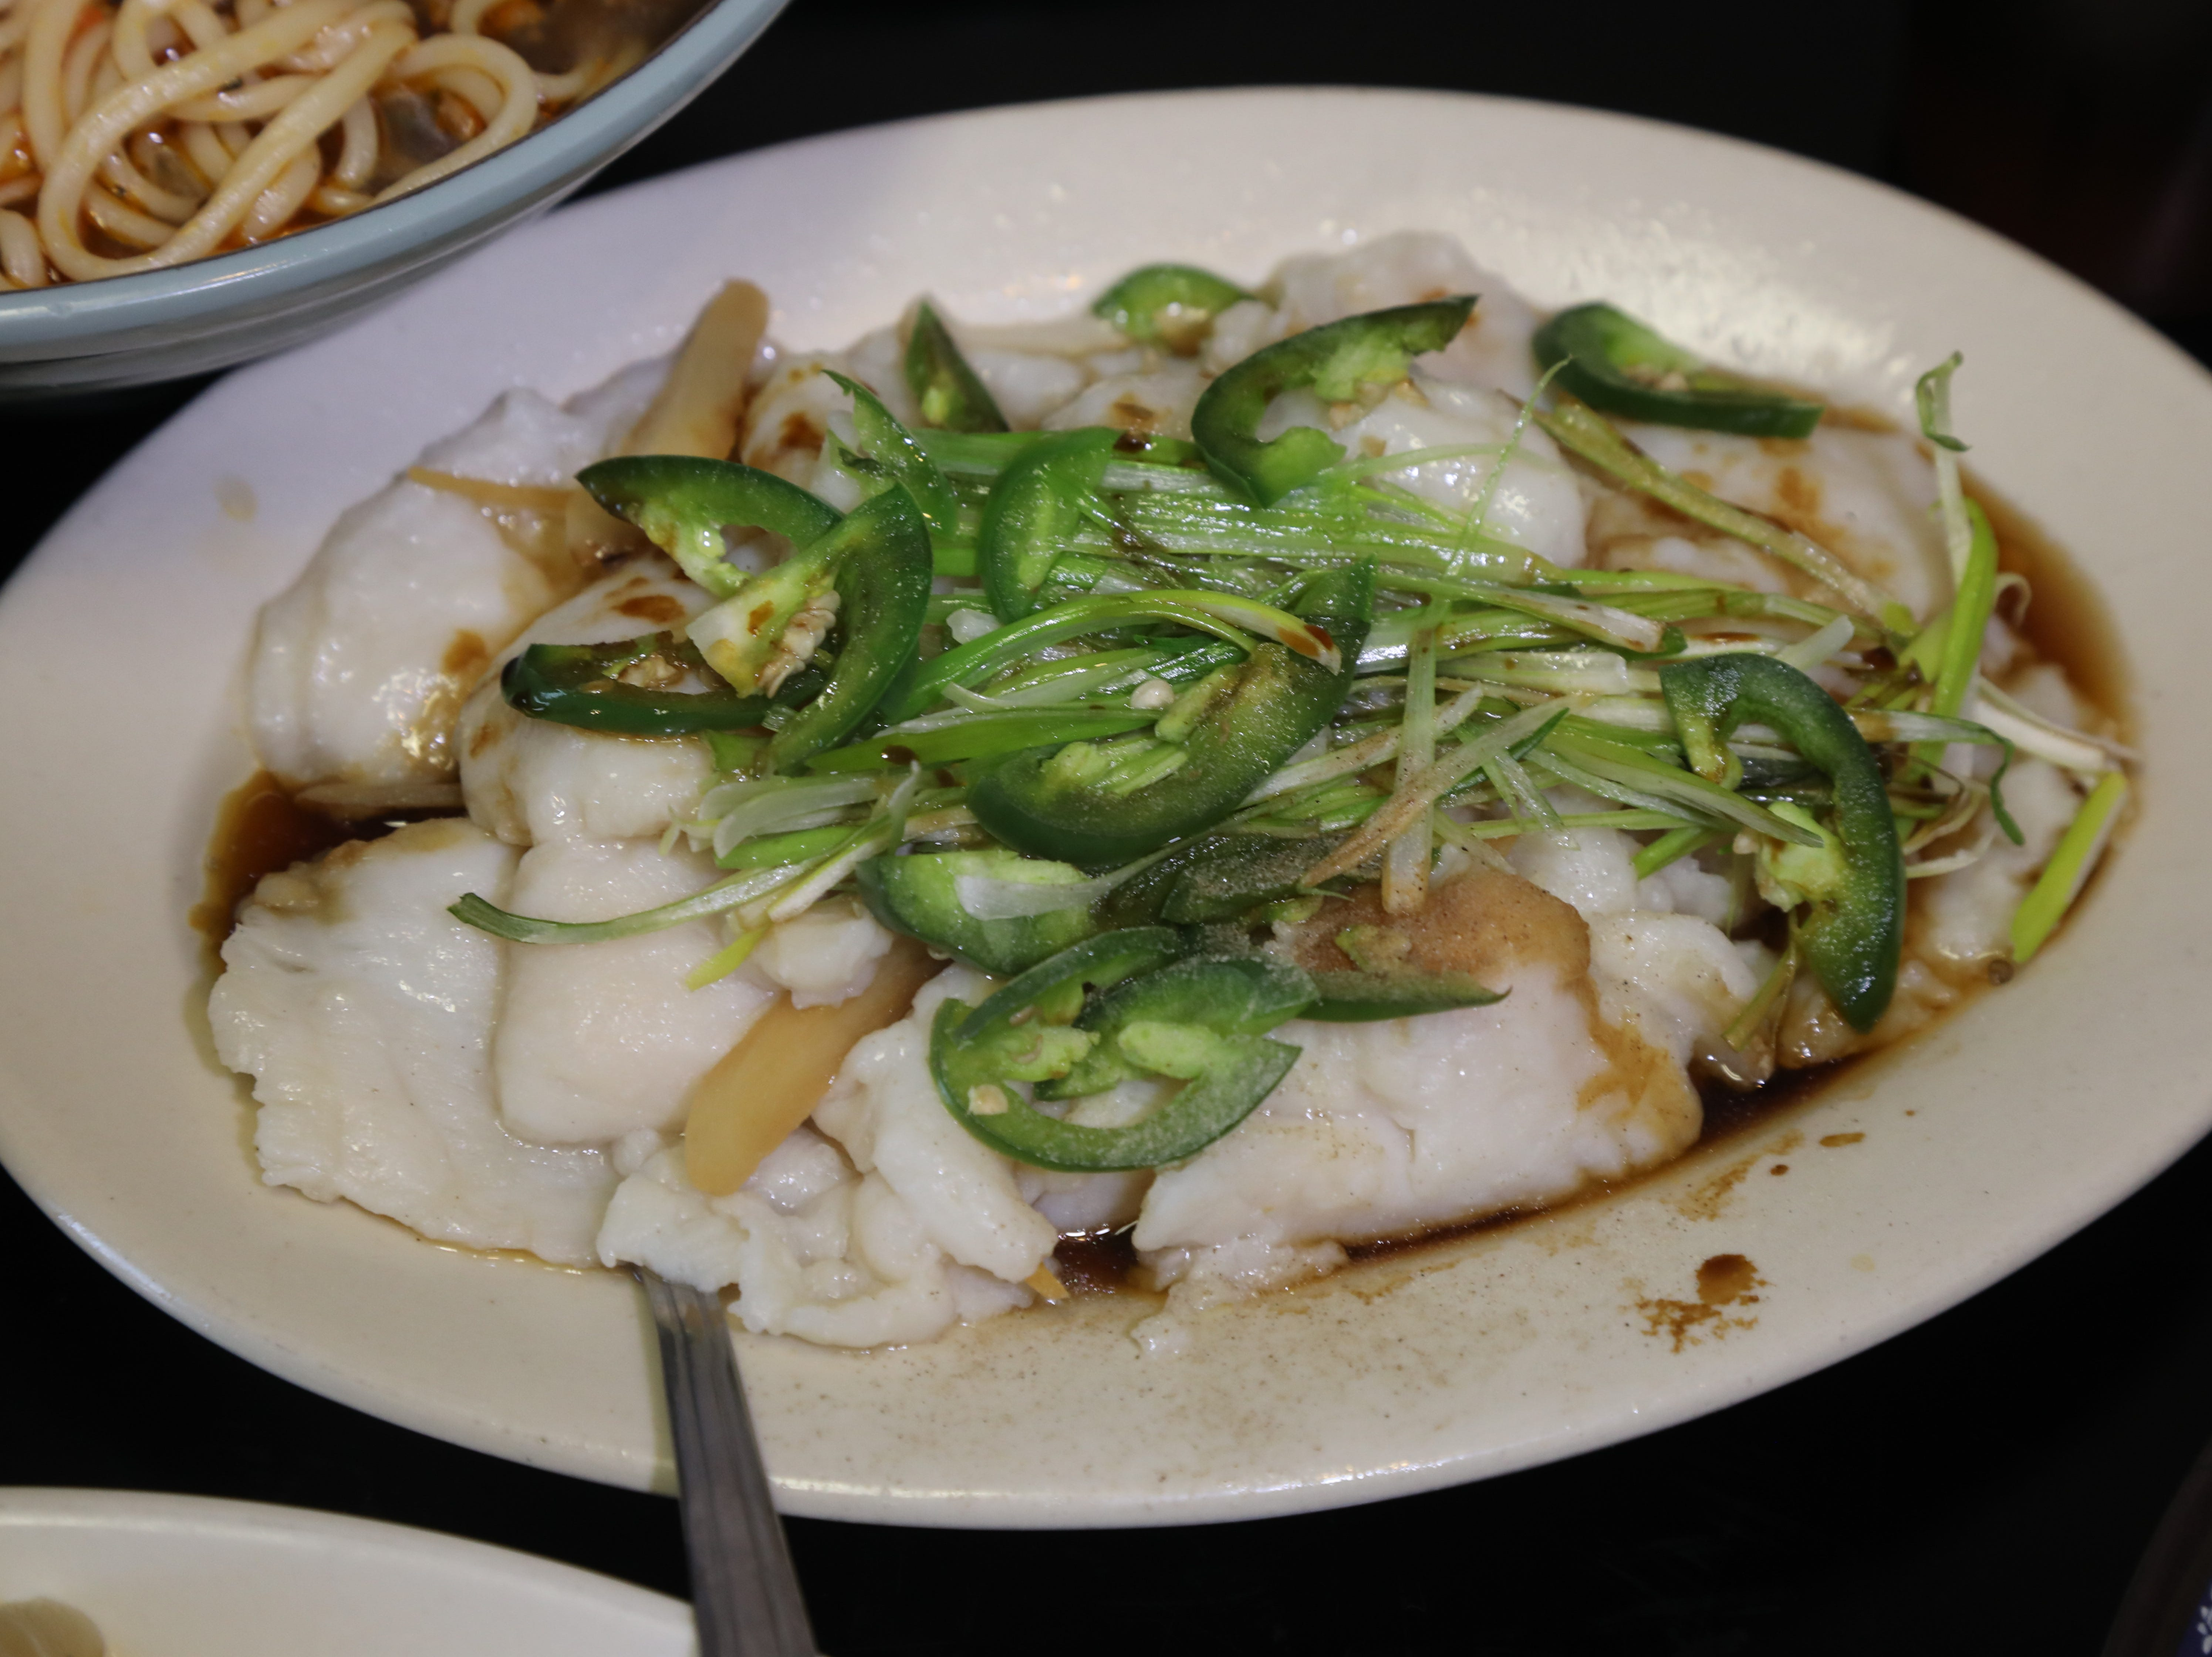 Steamed fish with jalape–o peppers from Shan Shan Noodles.